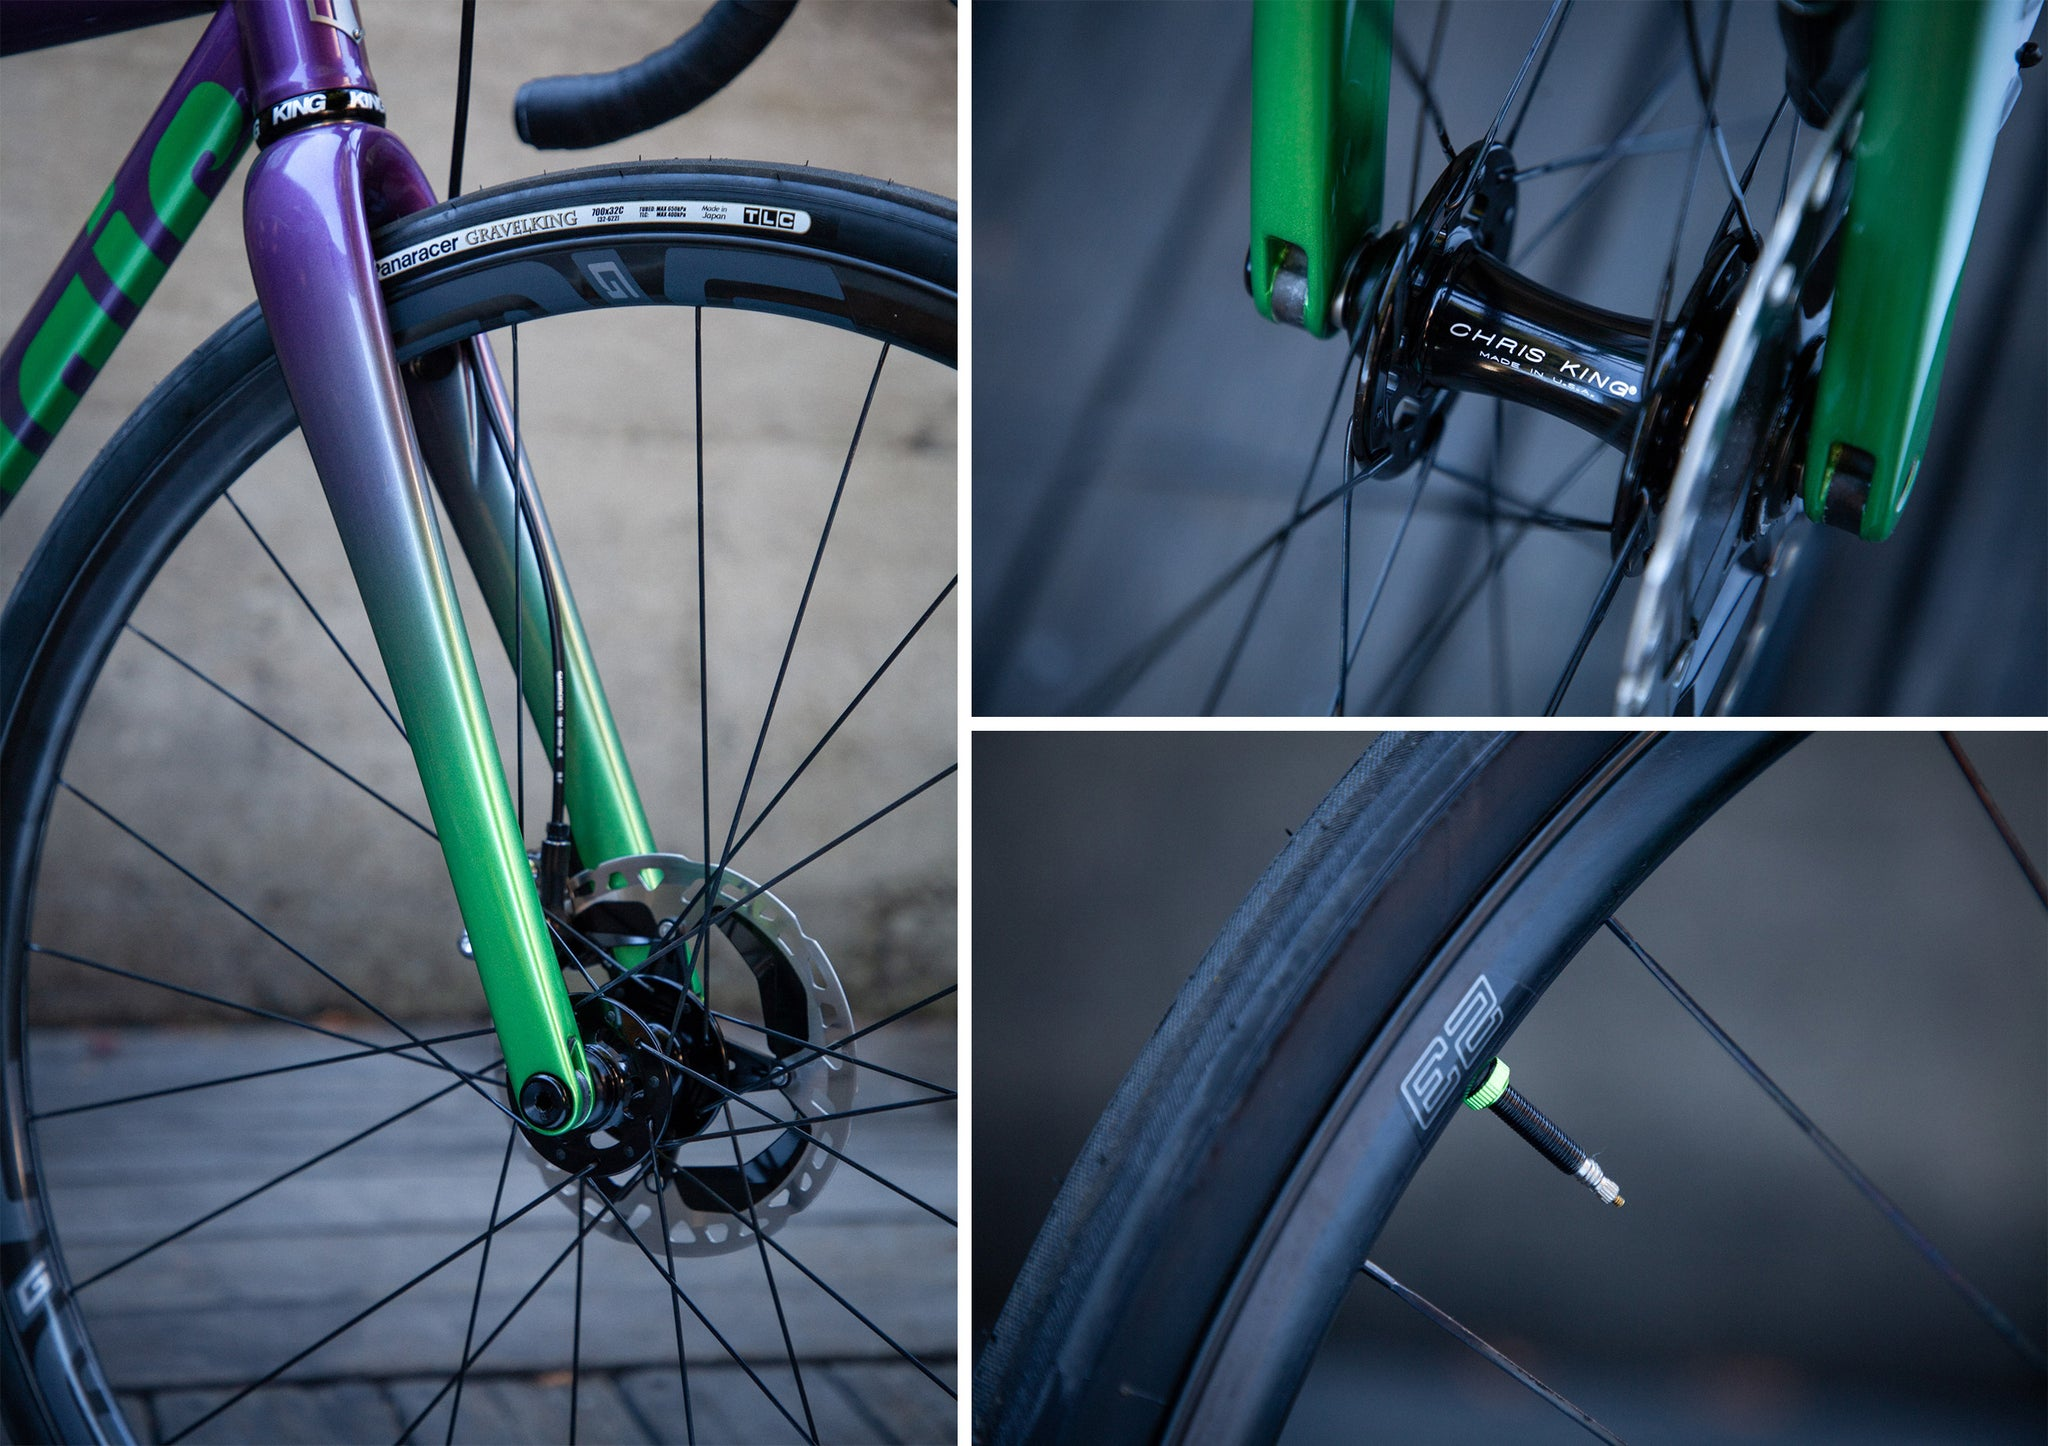 mosaic GT1 gravel bike purple green wheels enve G23 panaracer